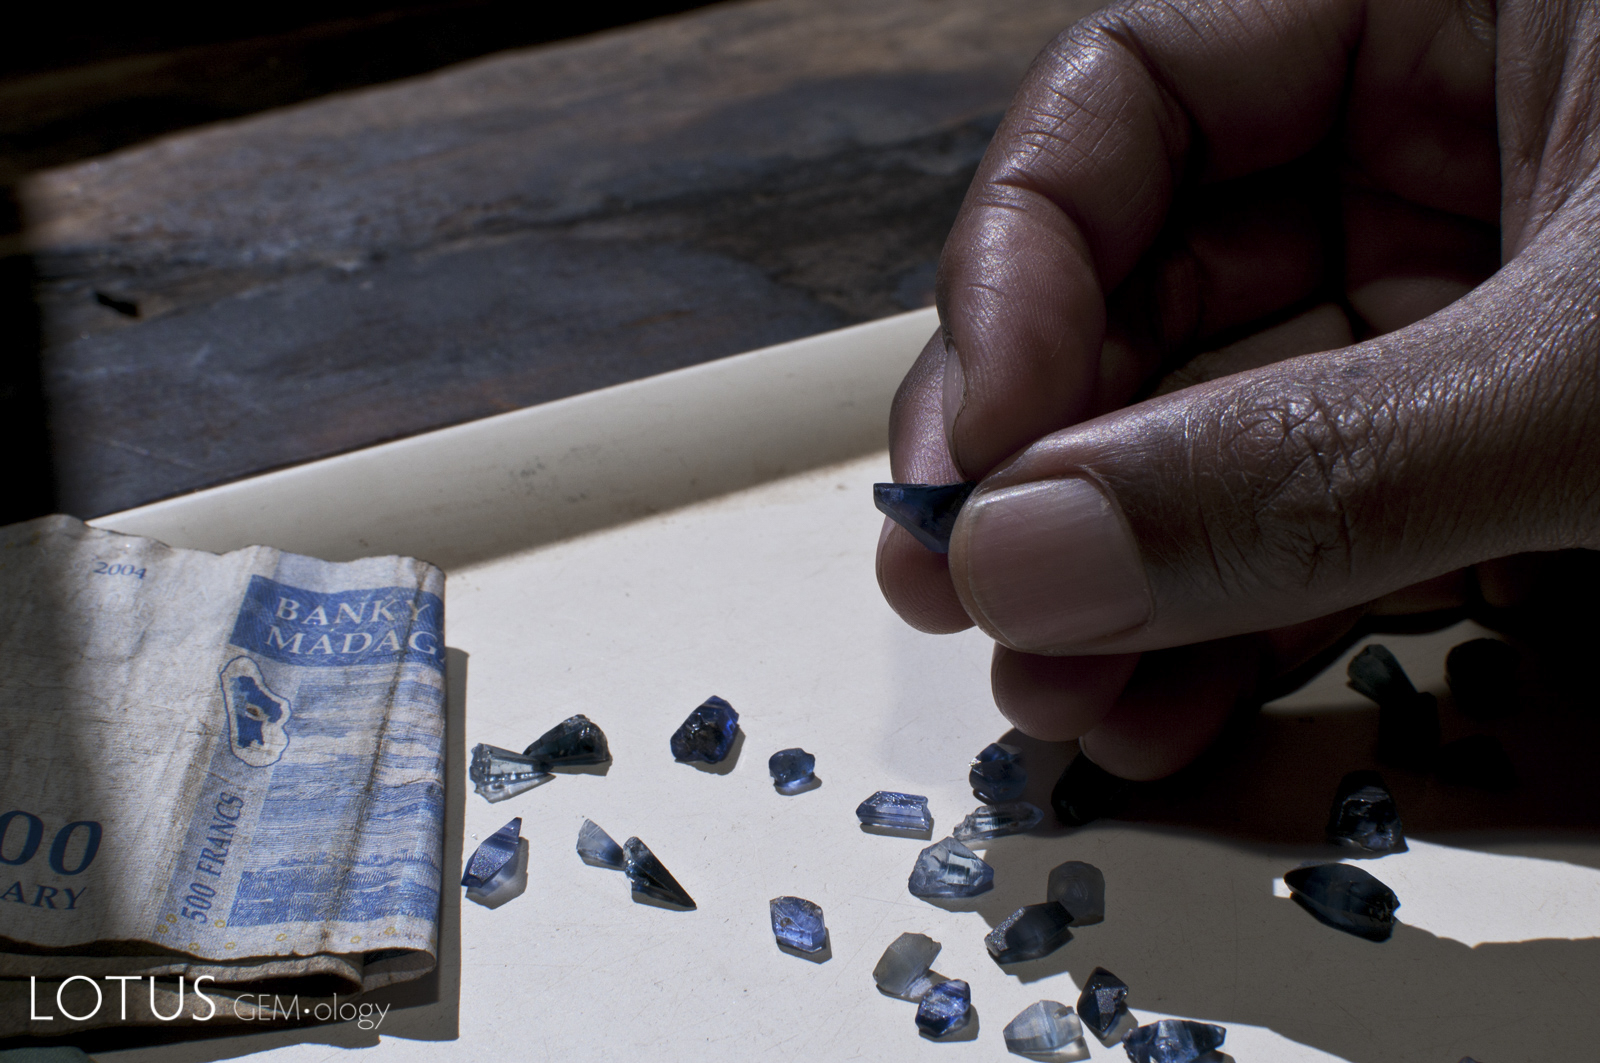 Fine blue sapphire crystals from Andranondambo in Madagascar's deep south. When these gems first hit the international market in the mid-1990s, they were often confused with fine sapphires from Kashmir, Sri Lanka and Myanmar. And they still are…